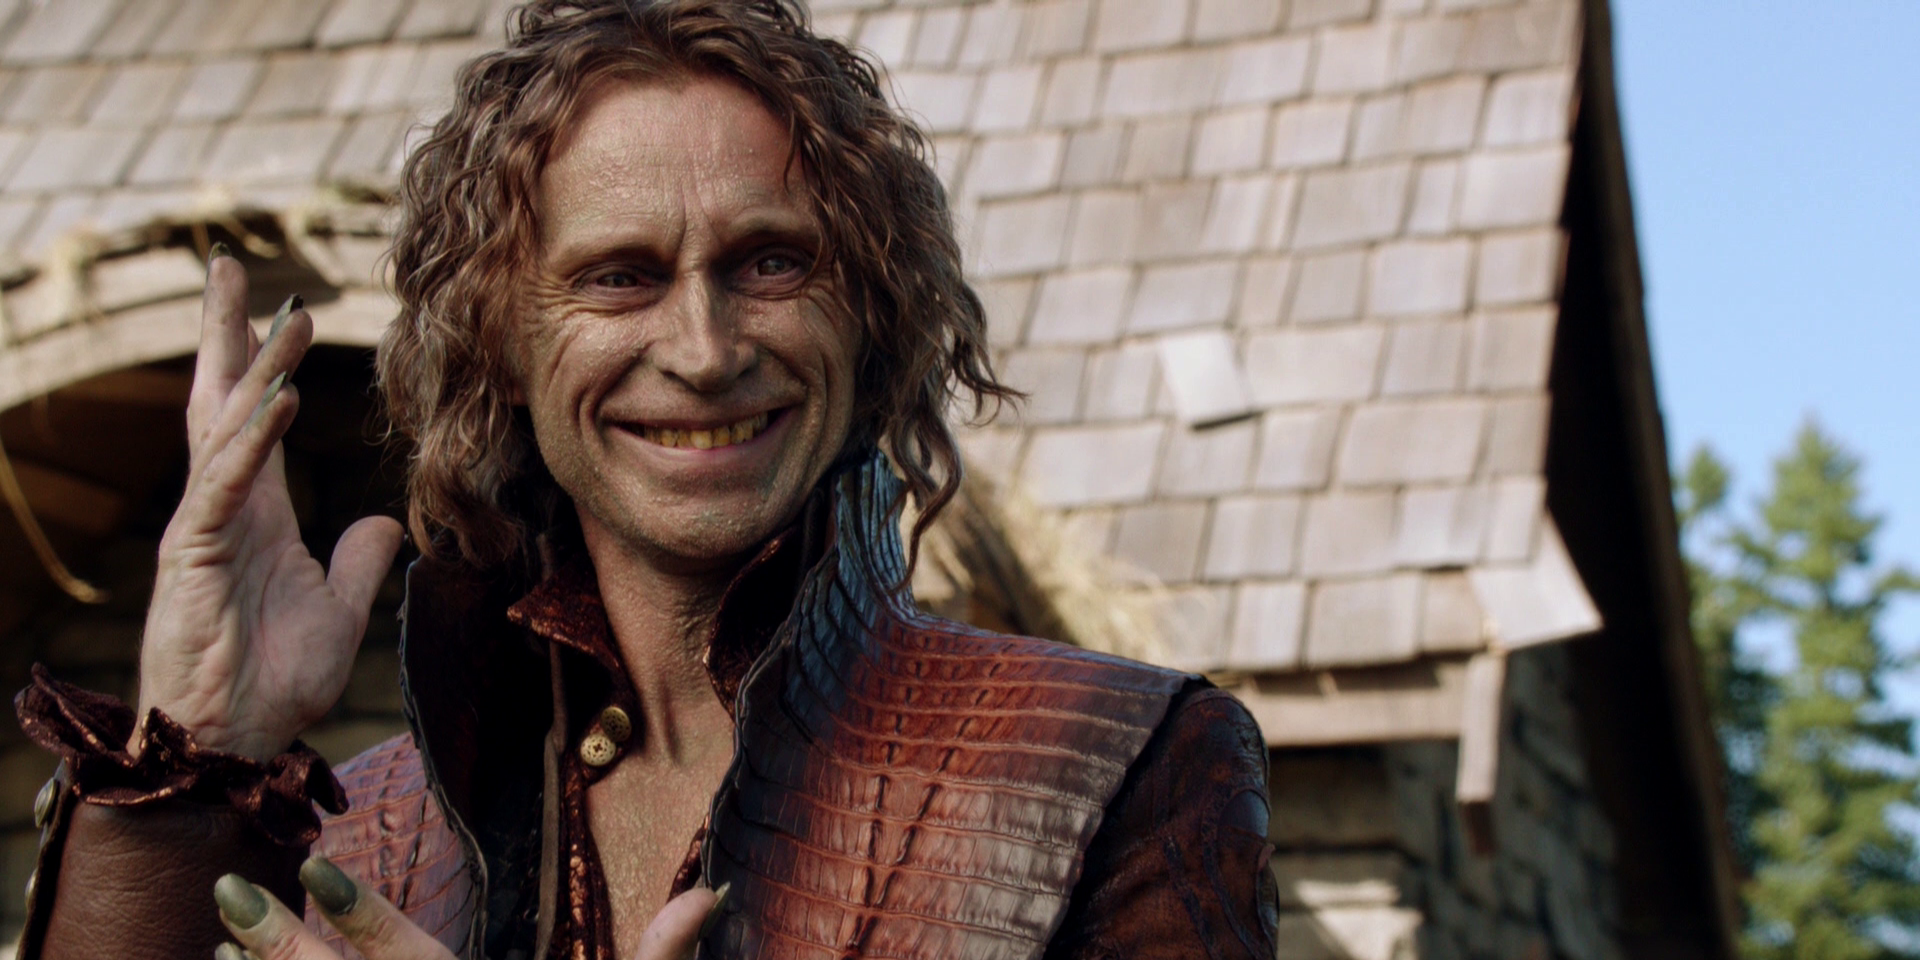 Rumpelstiltskin in Once Upon a Time